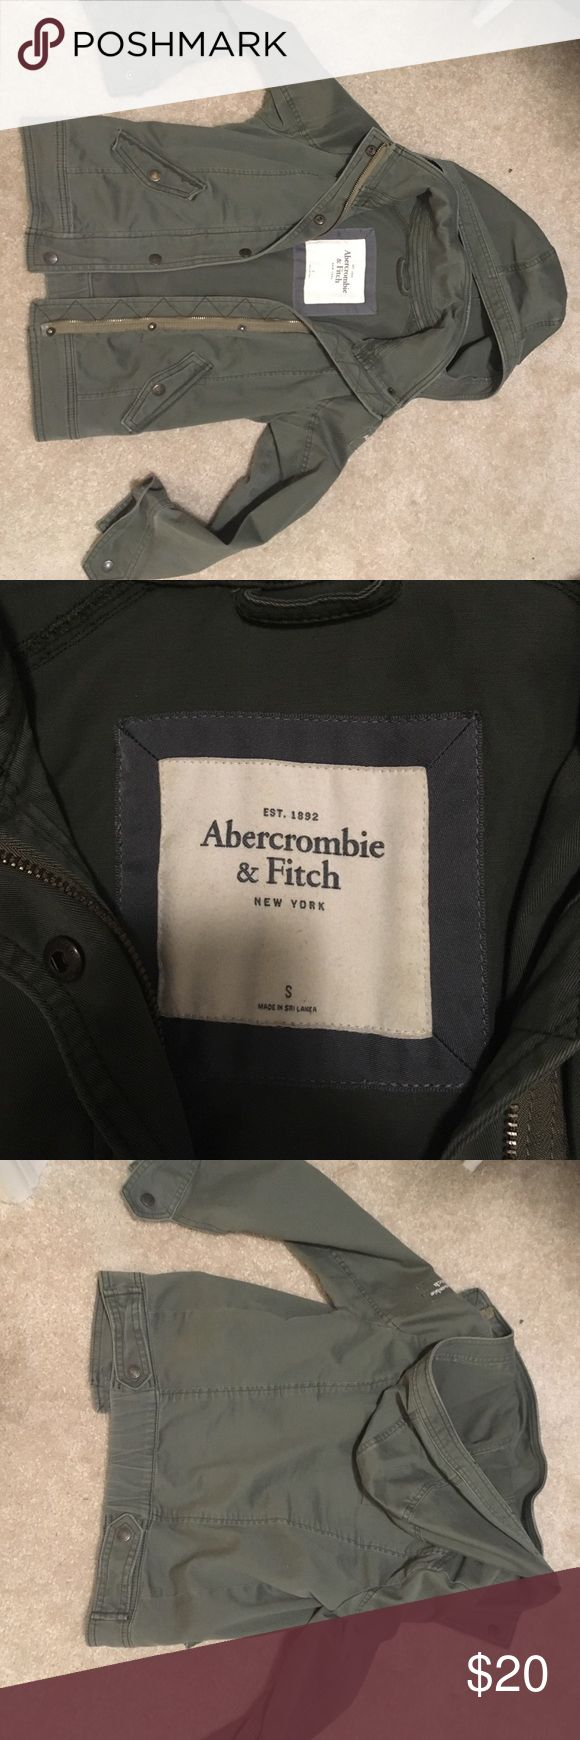 Abercrombie and Fitch cargo jacket Green Abercrombie and fitch jacket, size s worn a handful of times. No tips tears or defects Abercrombie & Fitch Jackets & Coats